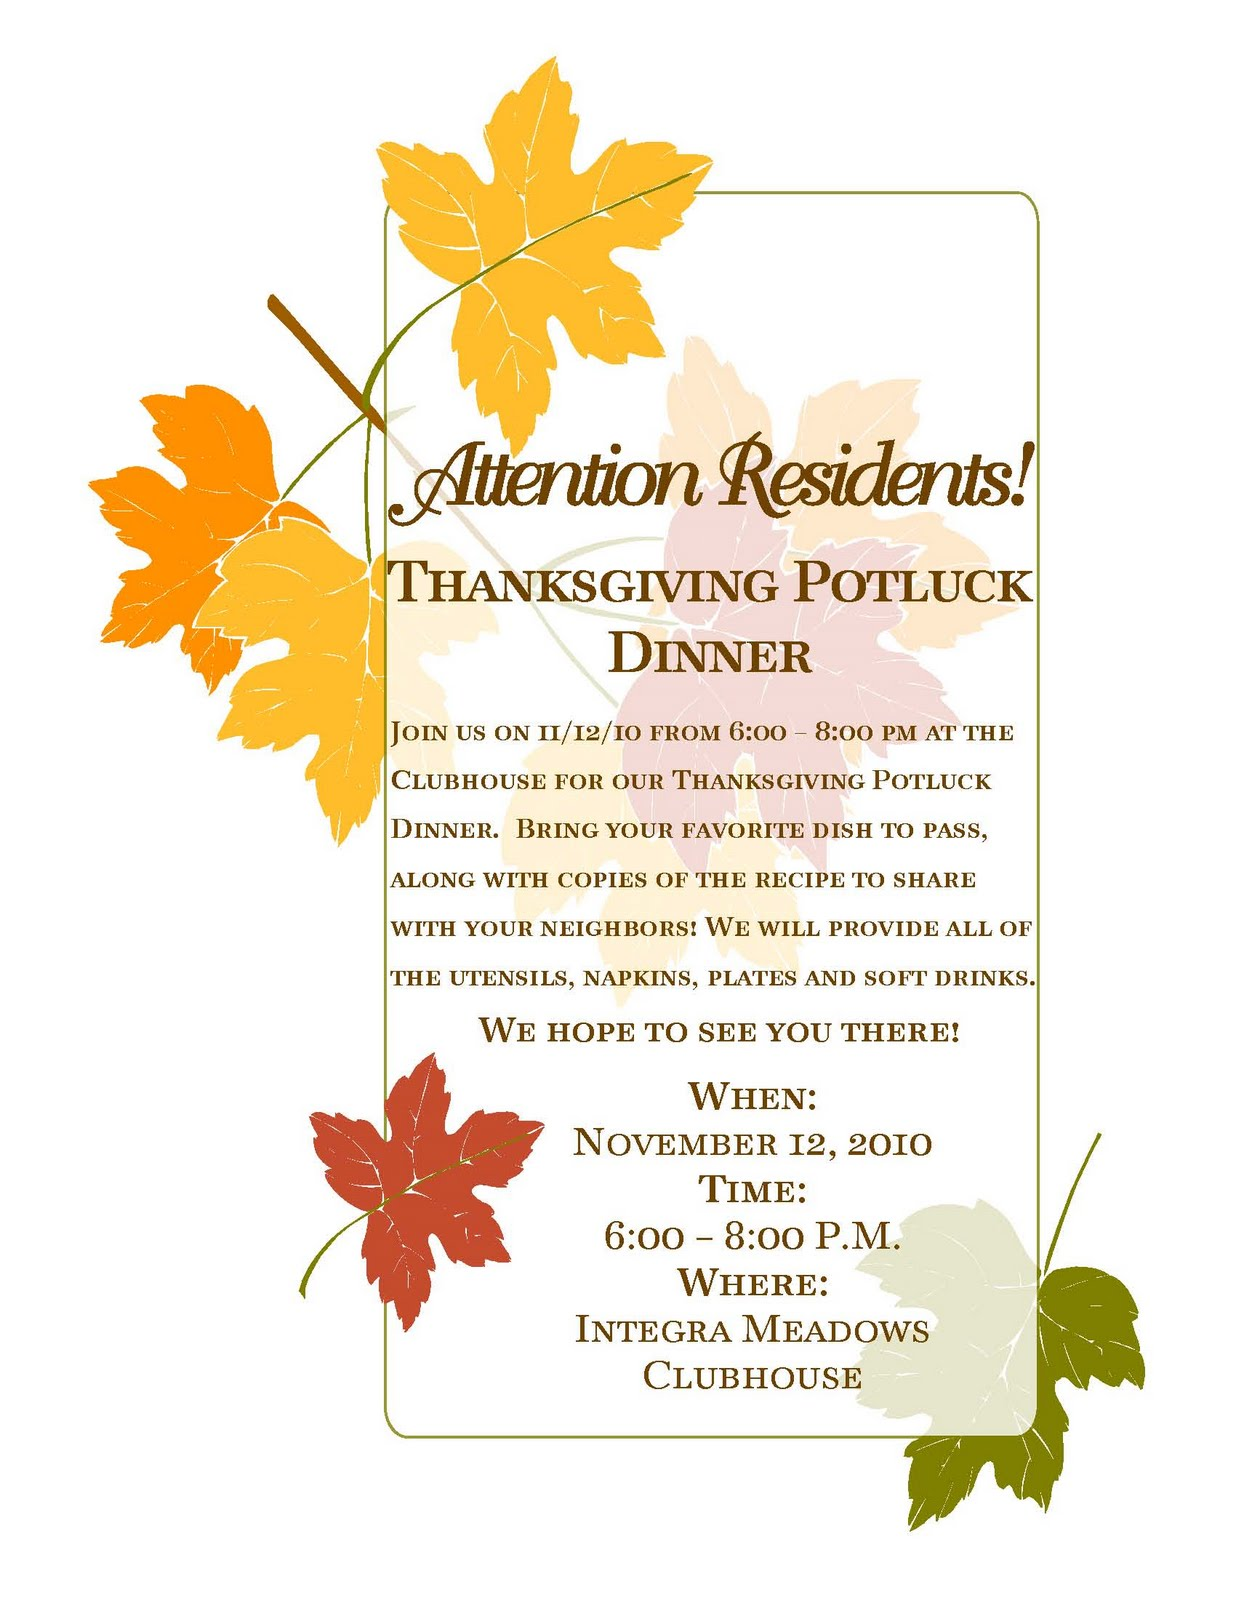 Potluck Email Invitation with luxury invitations template